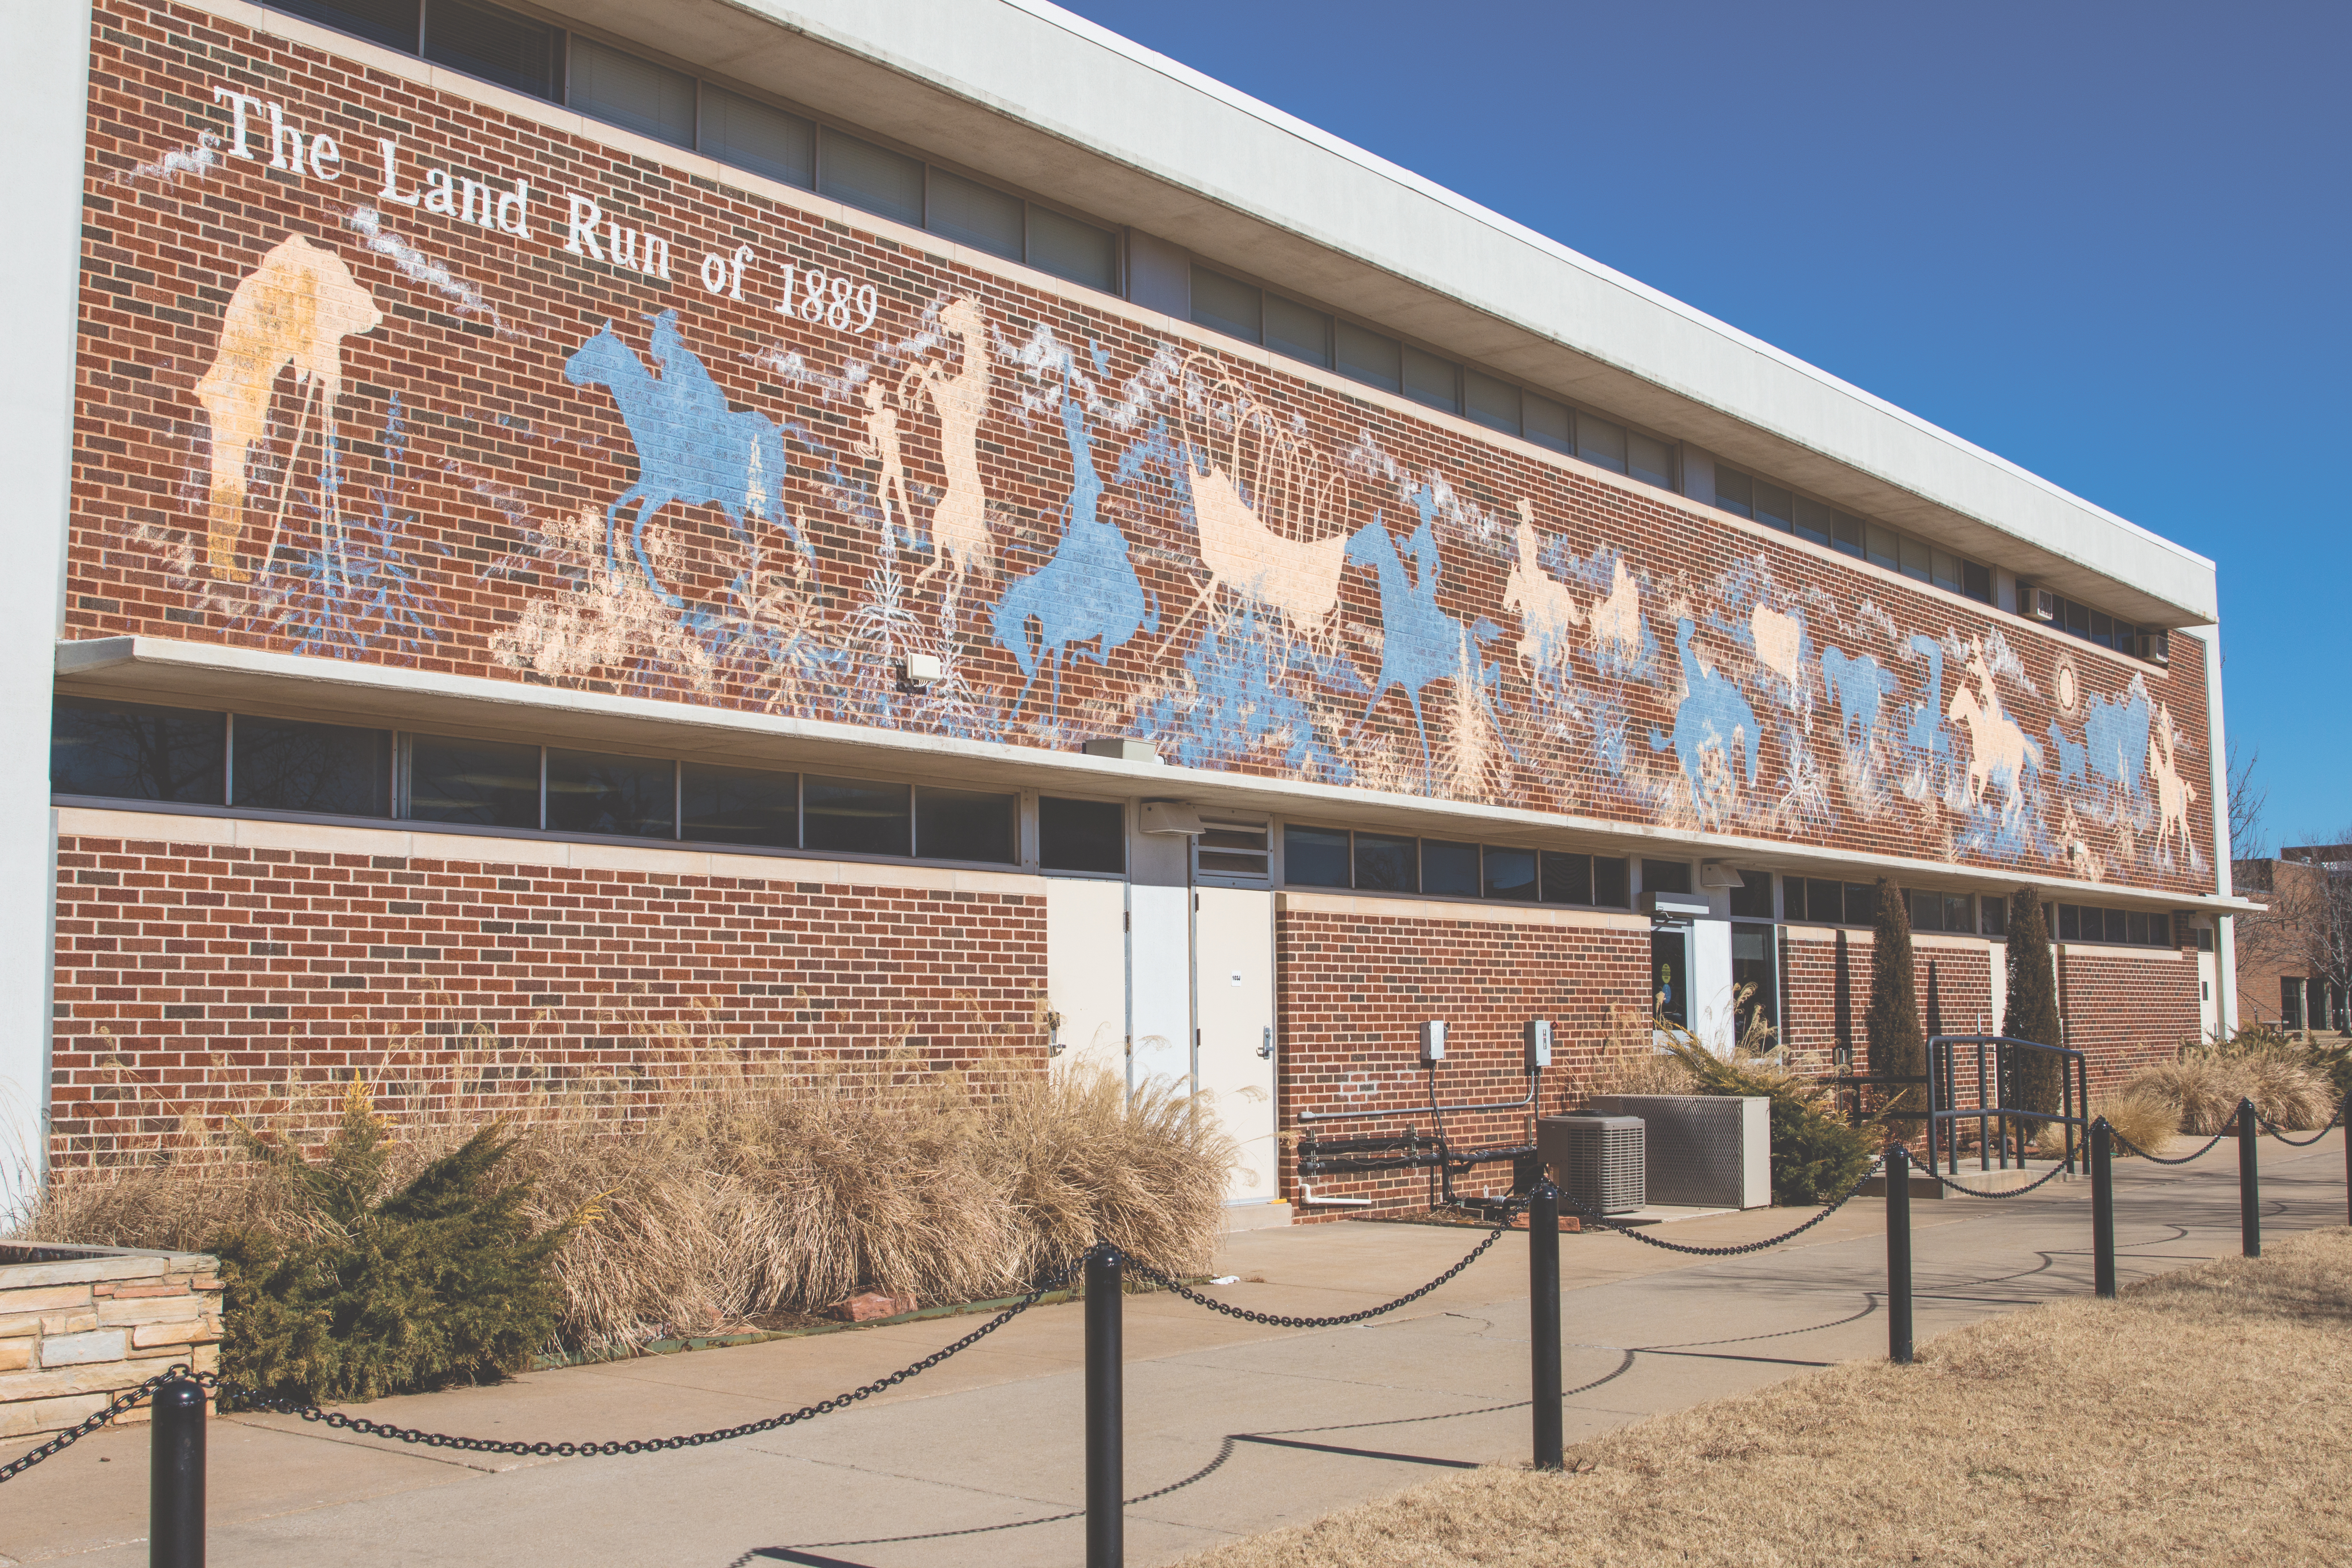 Resolution Could Change Land Run Mural's Future